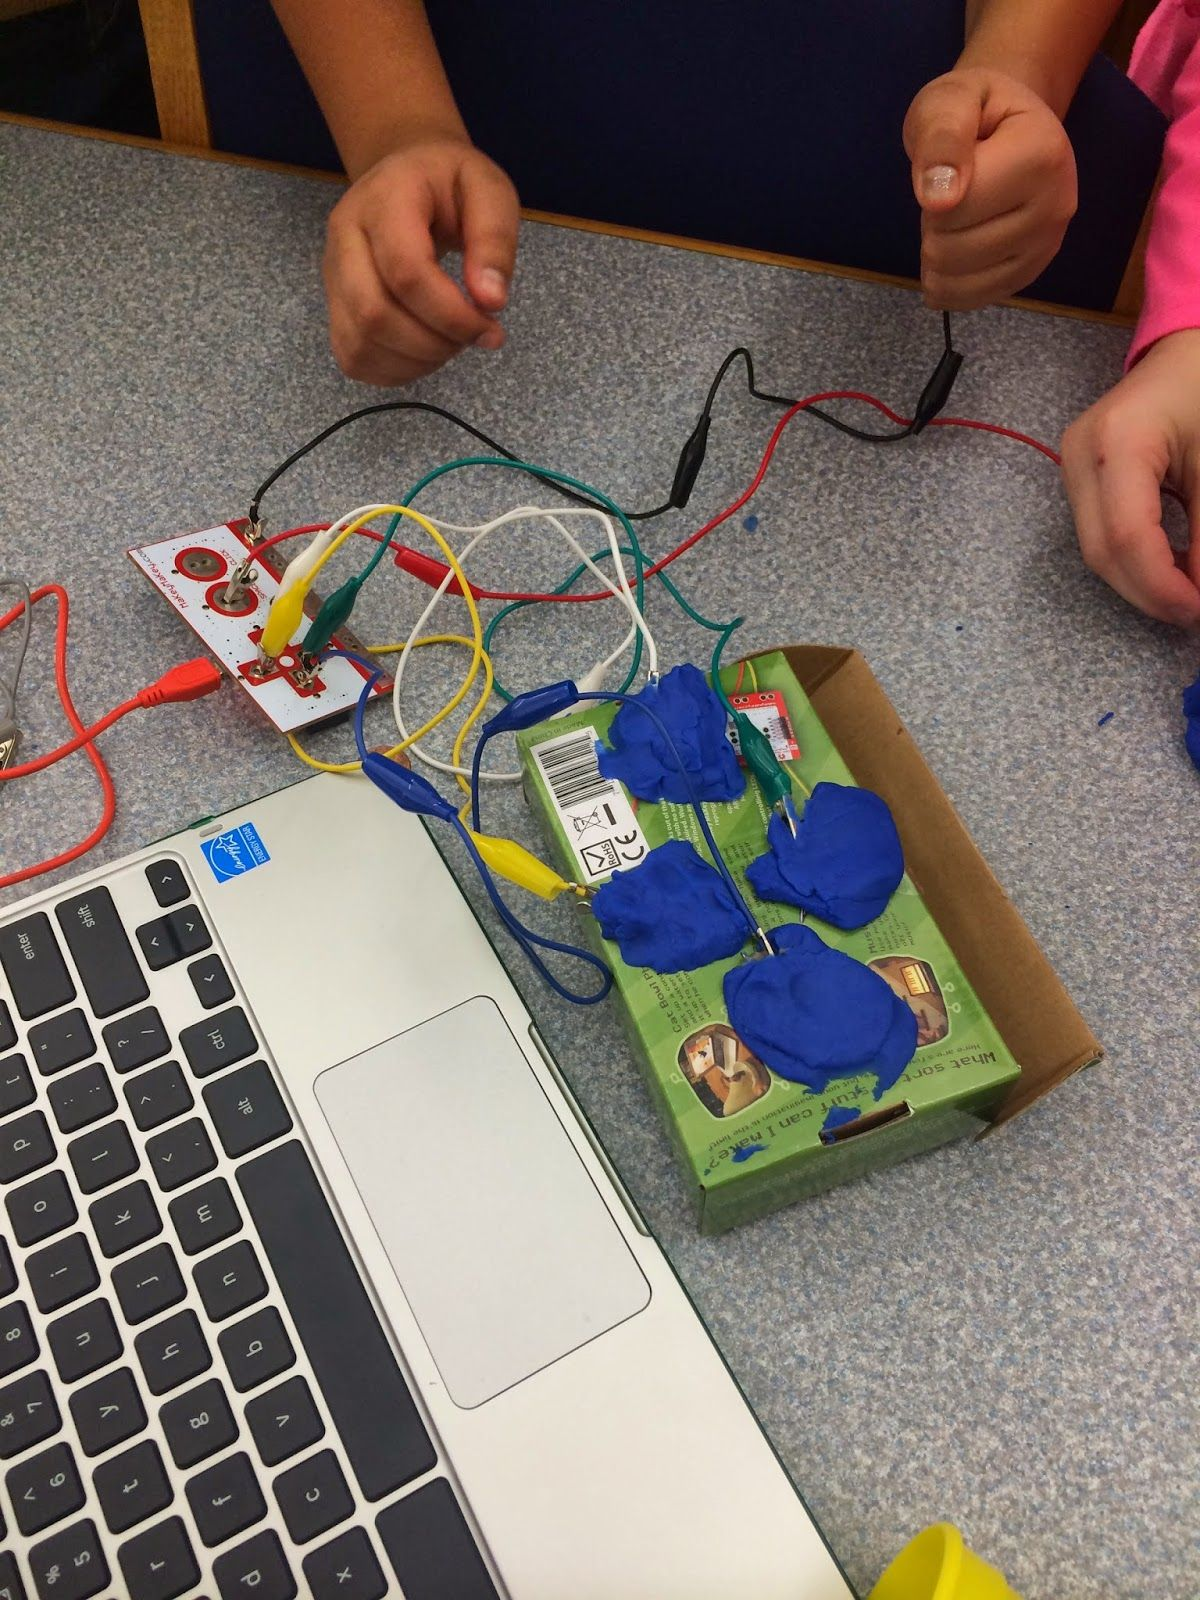 Two Geeky Teachers: You Might Be a Geeky Teacher if You Introduce Makey Makey to Your Students